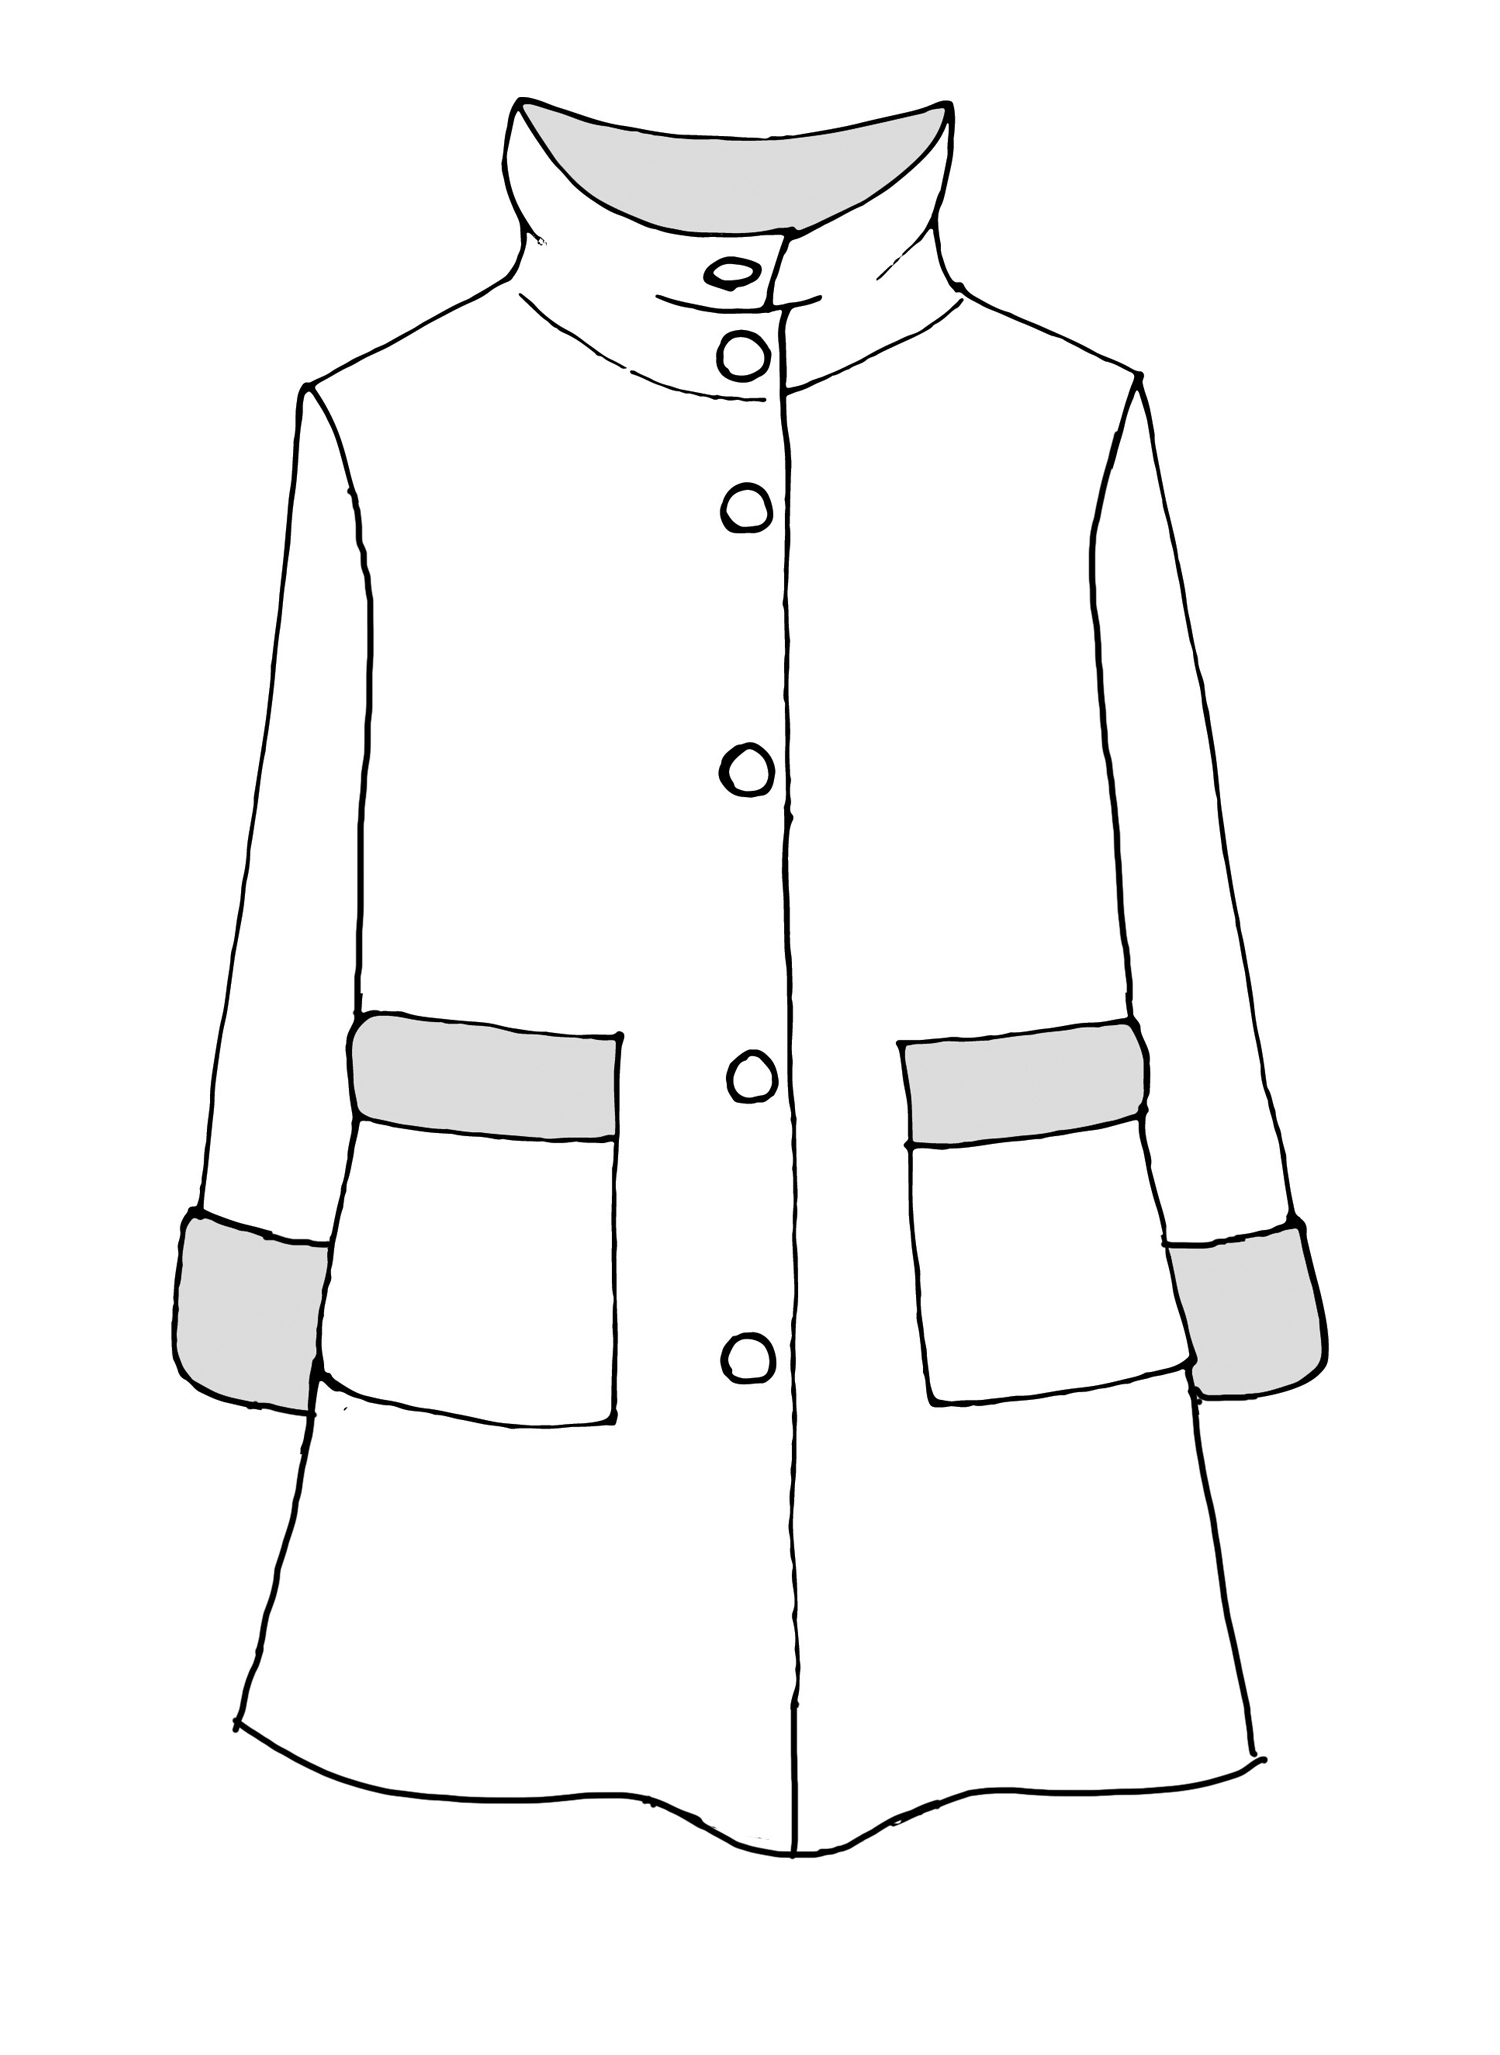 Artisan Jacket sketch image